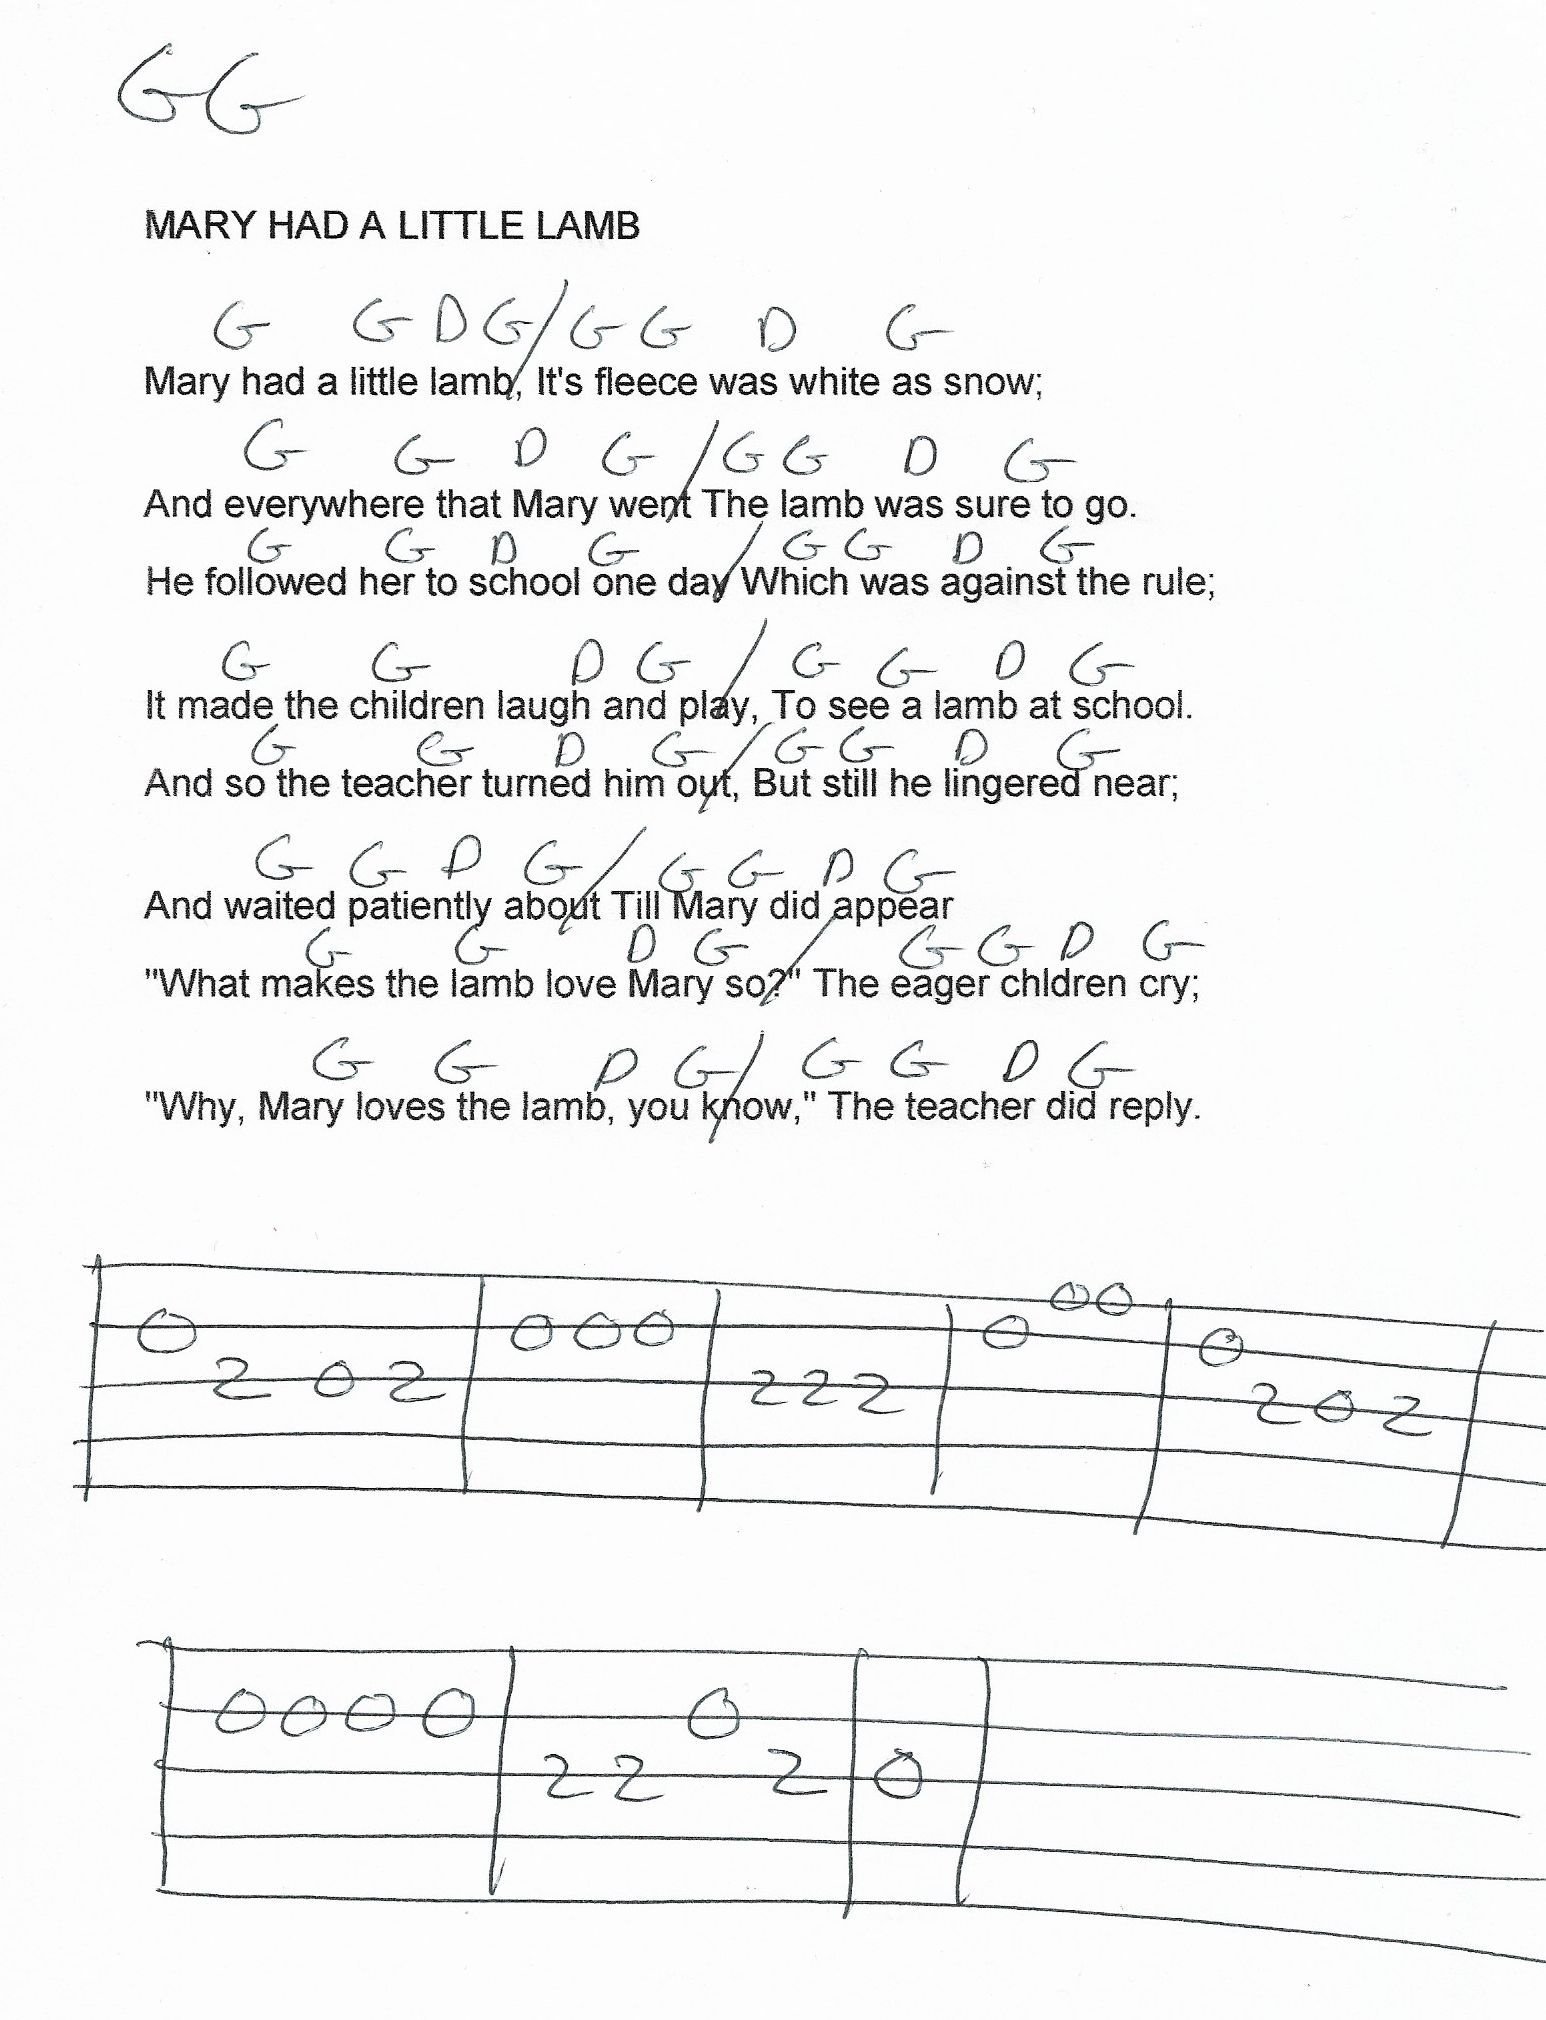 Mary Had A Little Lamb Guitar Chord Chart In G Major 2018